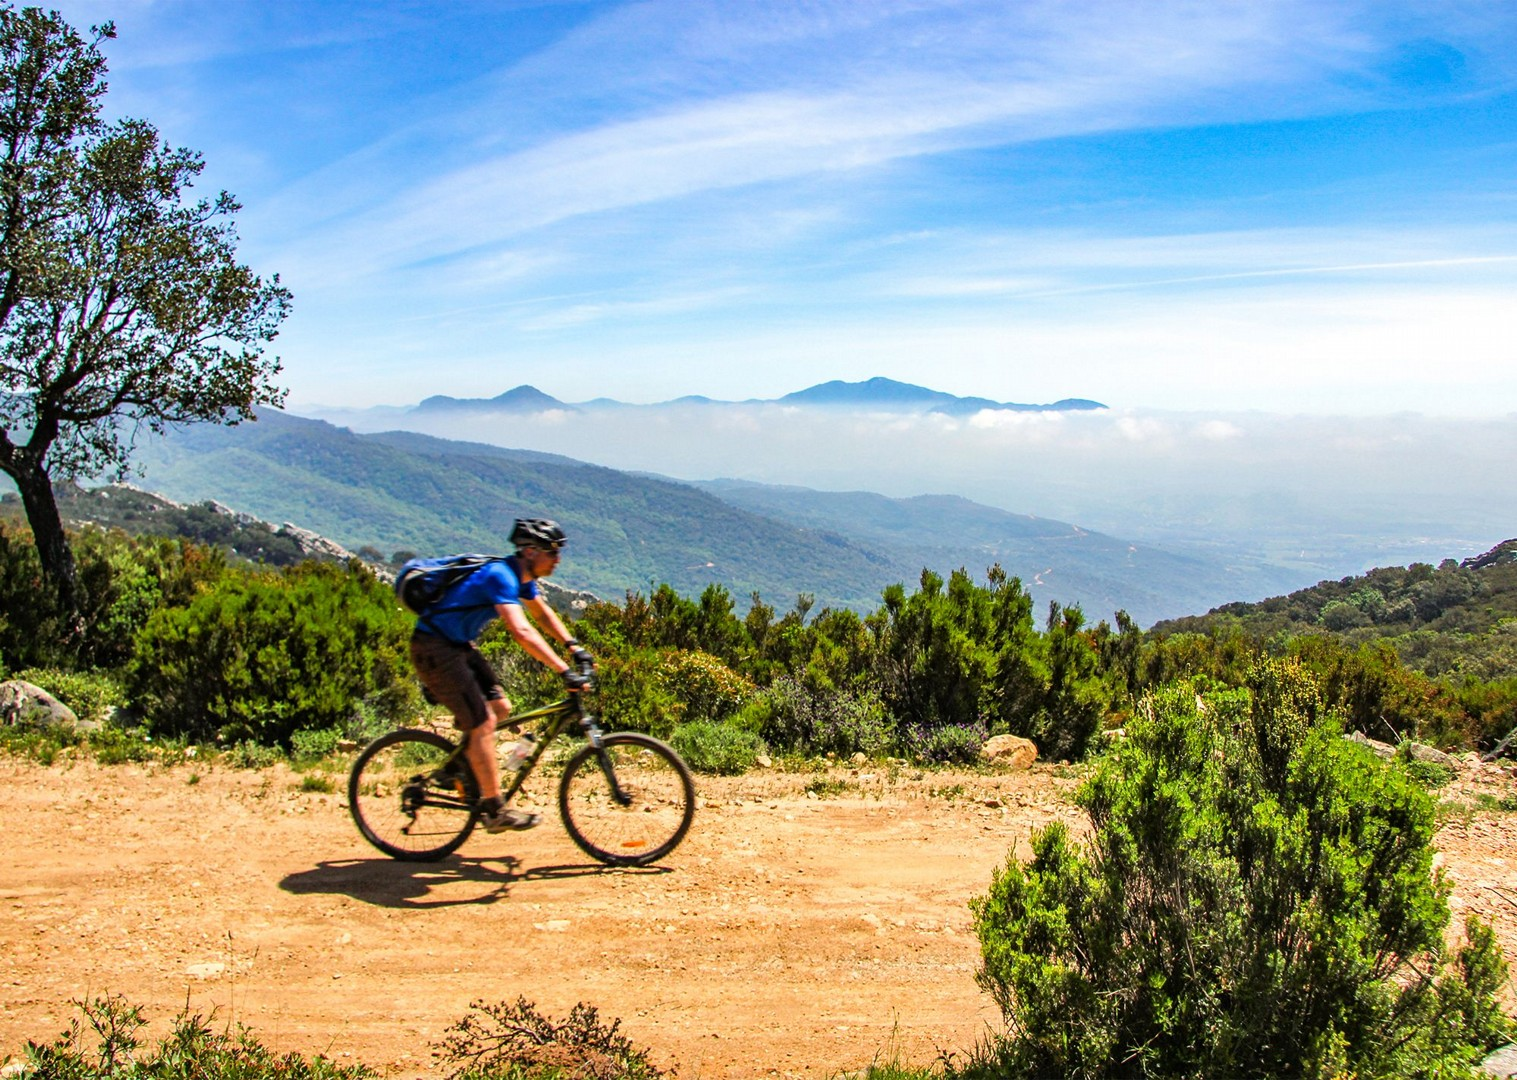 transandaluz9.jpg - Spain - Trans Andaluz - Guided Mountain Bike Holiday - Mountain Biking